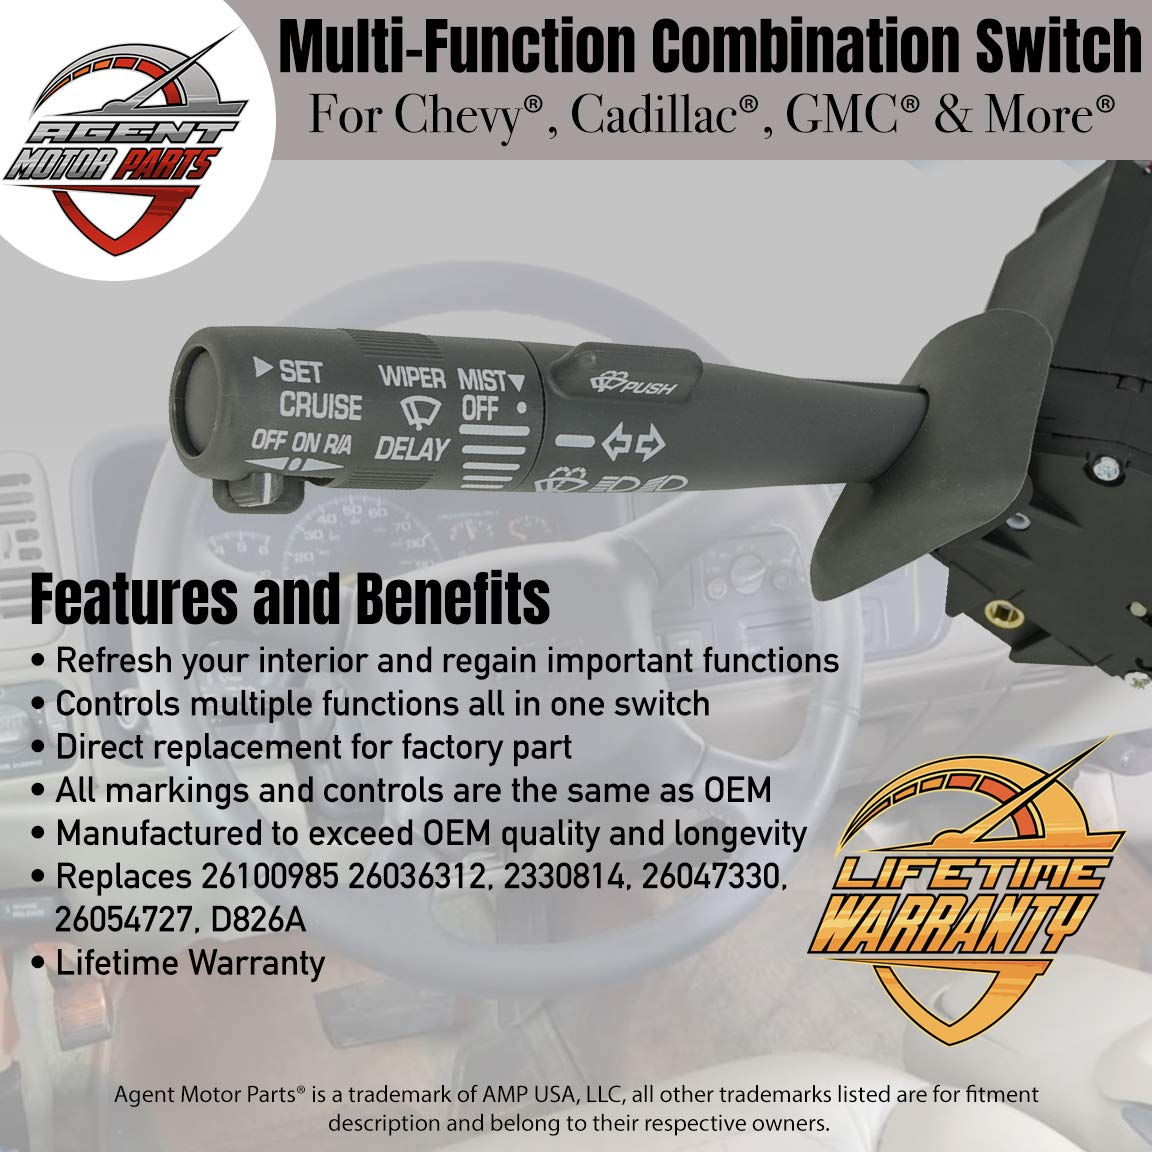 K1500 26036312 Sierra Replaces OE Part# 2330814 26100985 Suburban Multi-Function Combination Column Switch Turn Signal//Wiper//Washers//Hazard//Cruise Control For Fits Chevy Tahoe Blazer